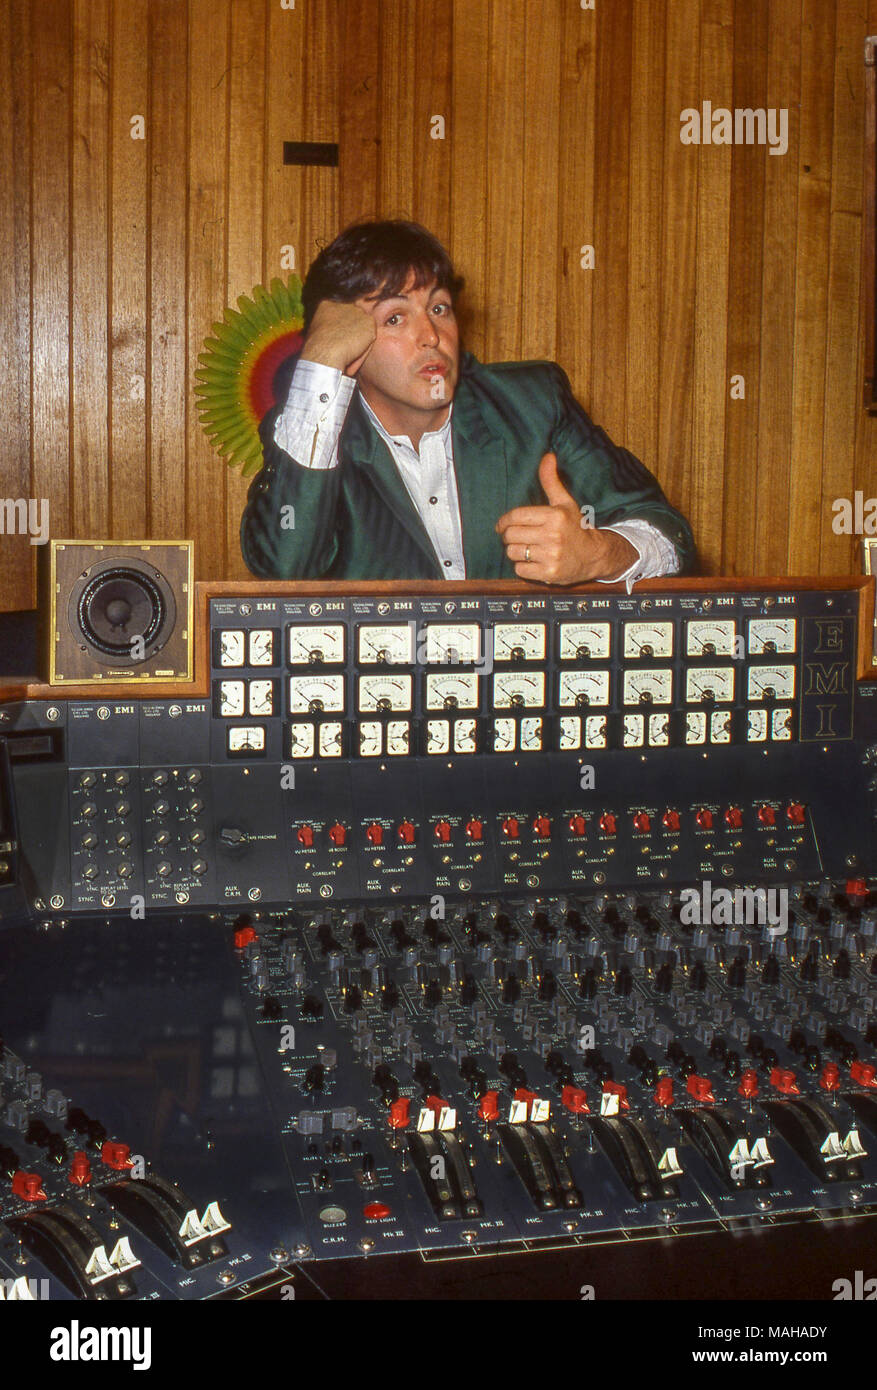 Paul McCartney At The Abbey Road Studios Promotong His Second Solo Album II In 1980